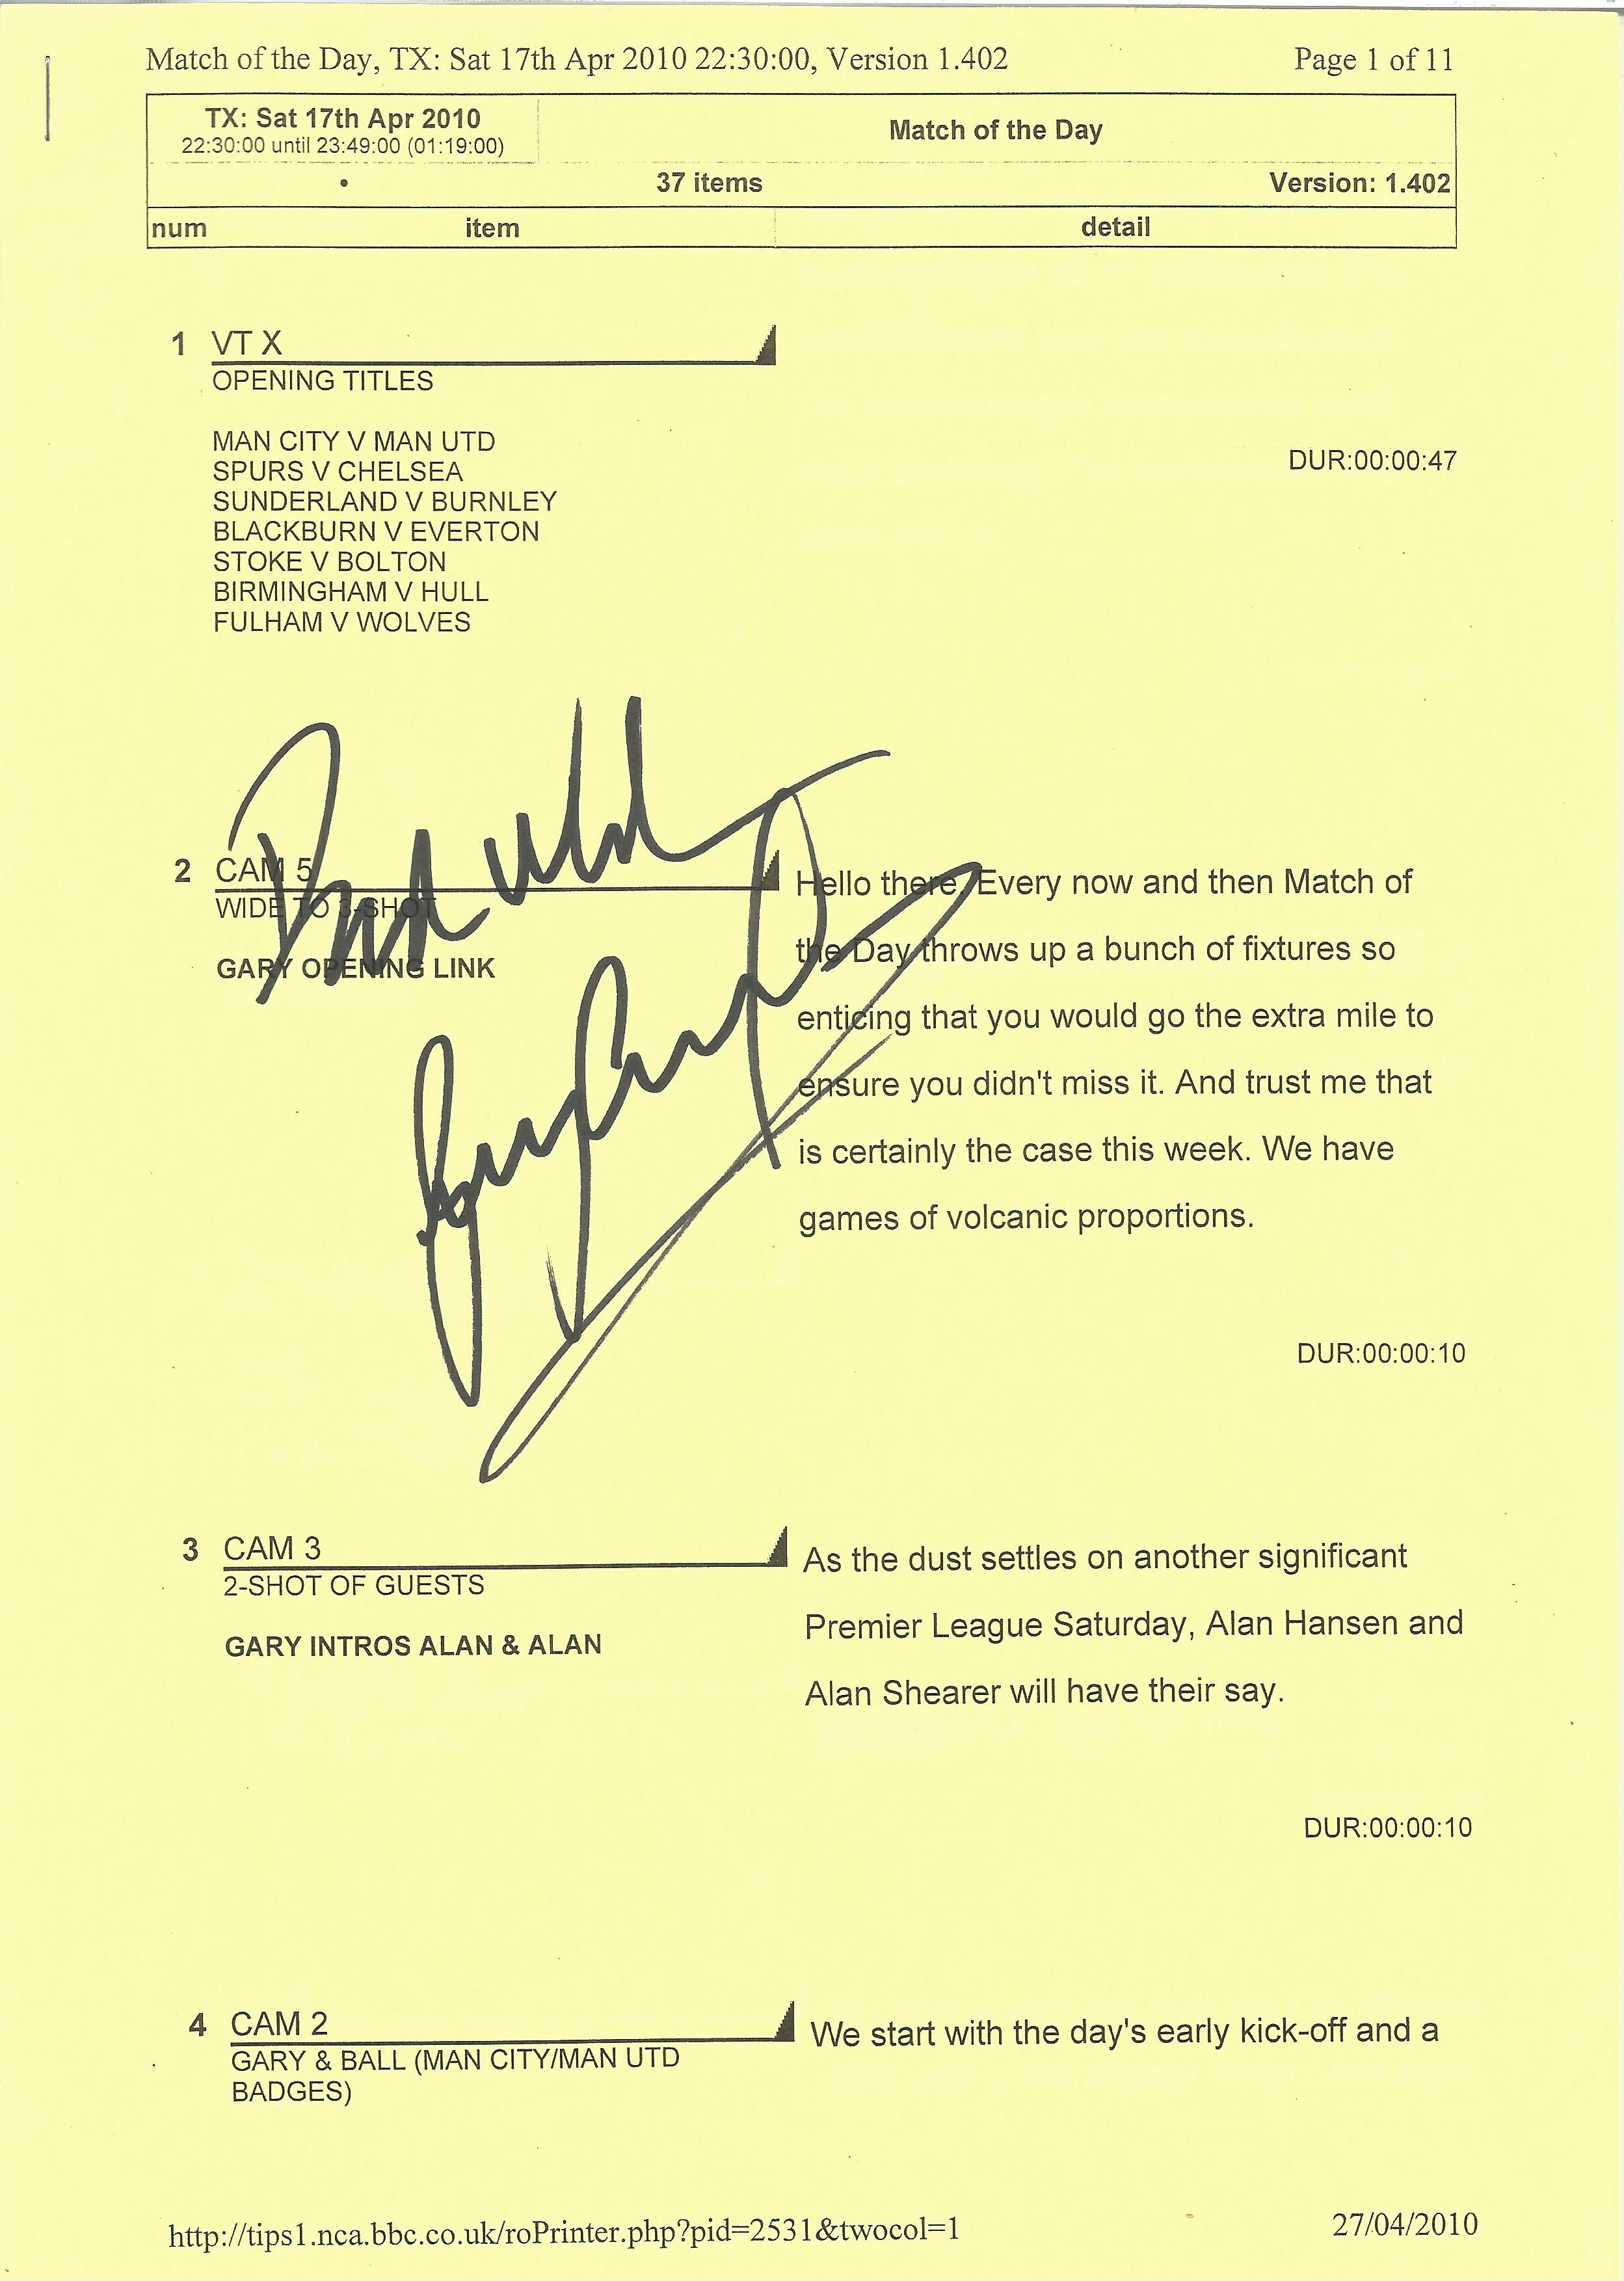 Footballer Gary Lineker signed Match of the Day script and running order for Saturday 17th April